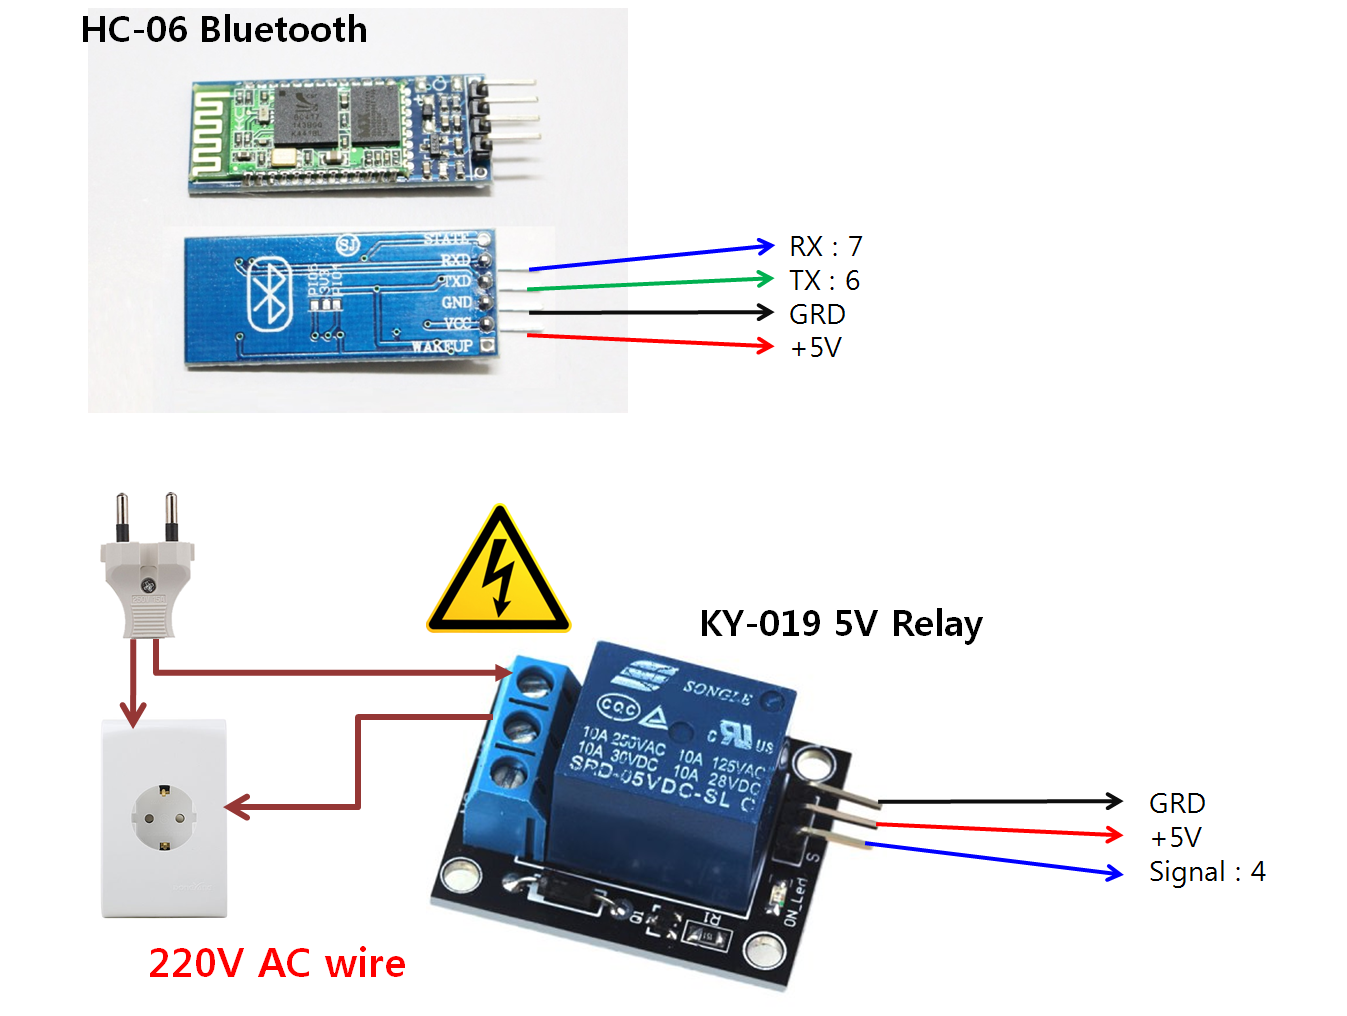 c2design's FireMonkey Cross Platform Projects: [IoT] Bluetooth AC